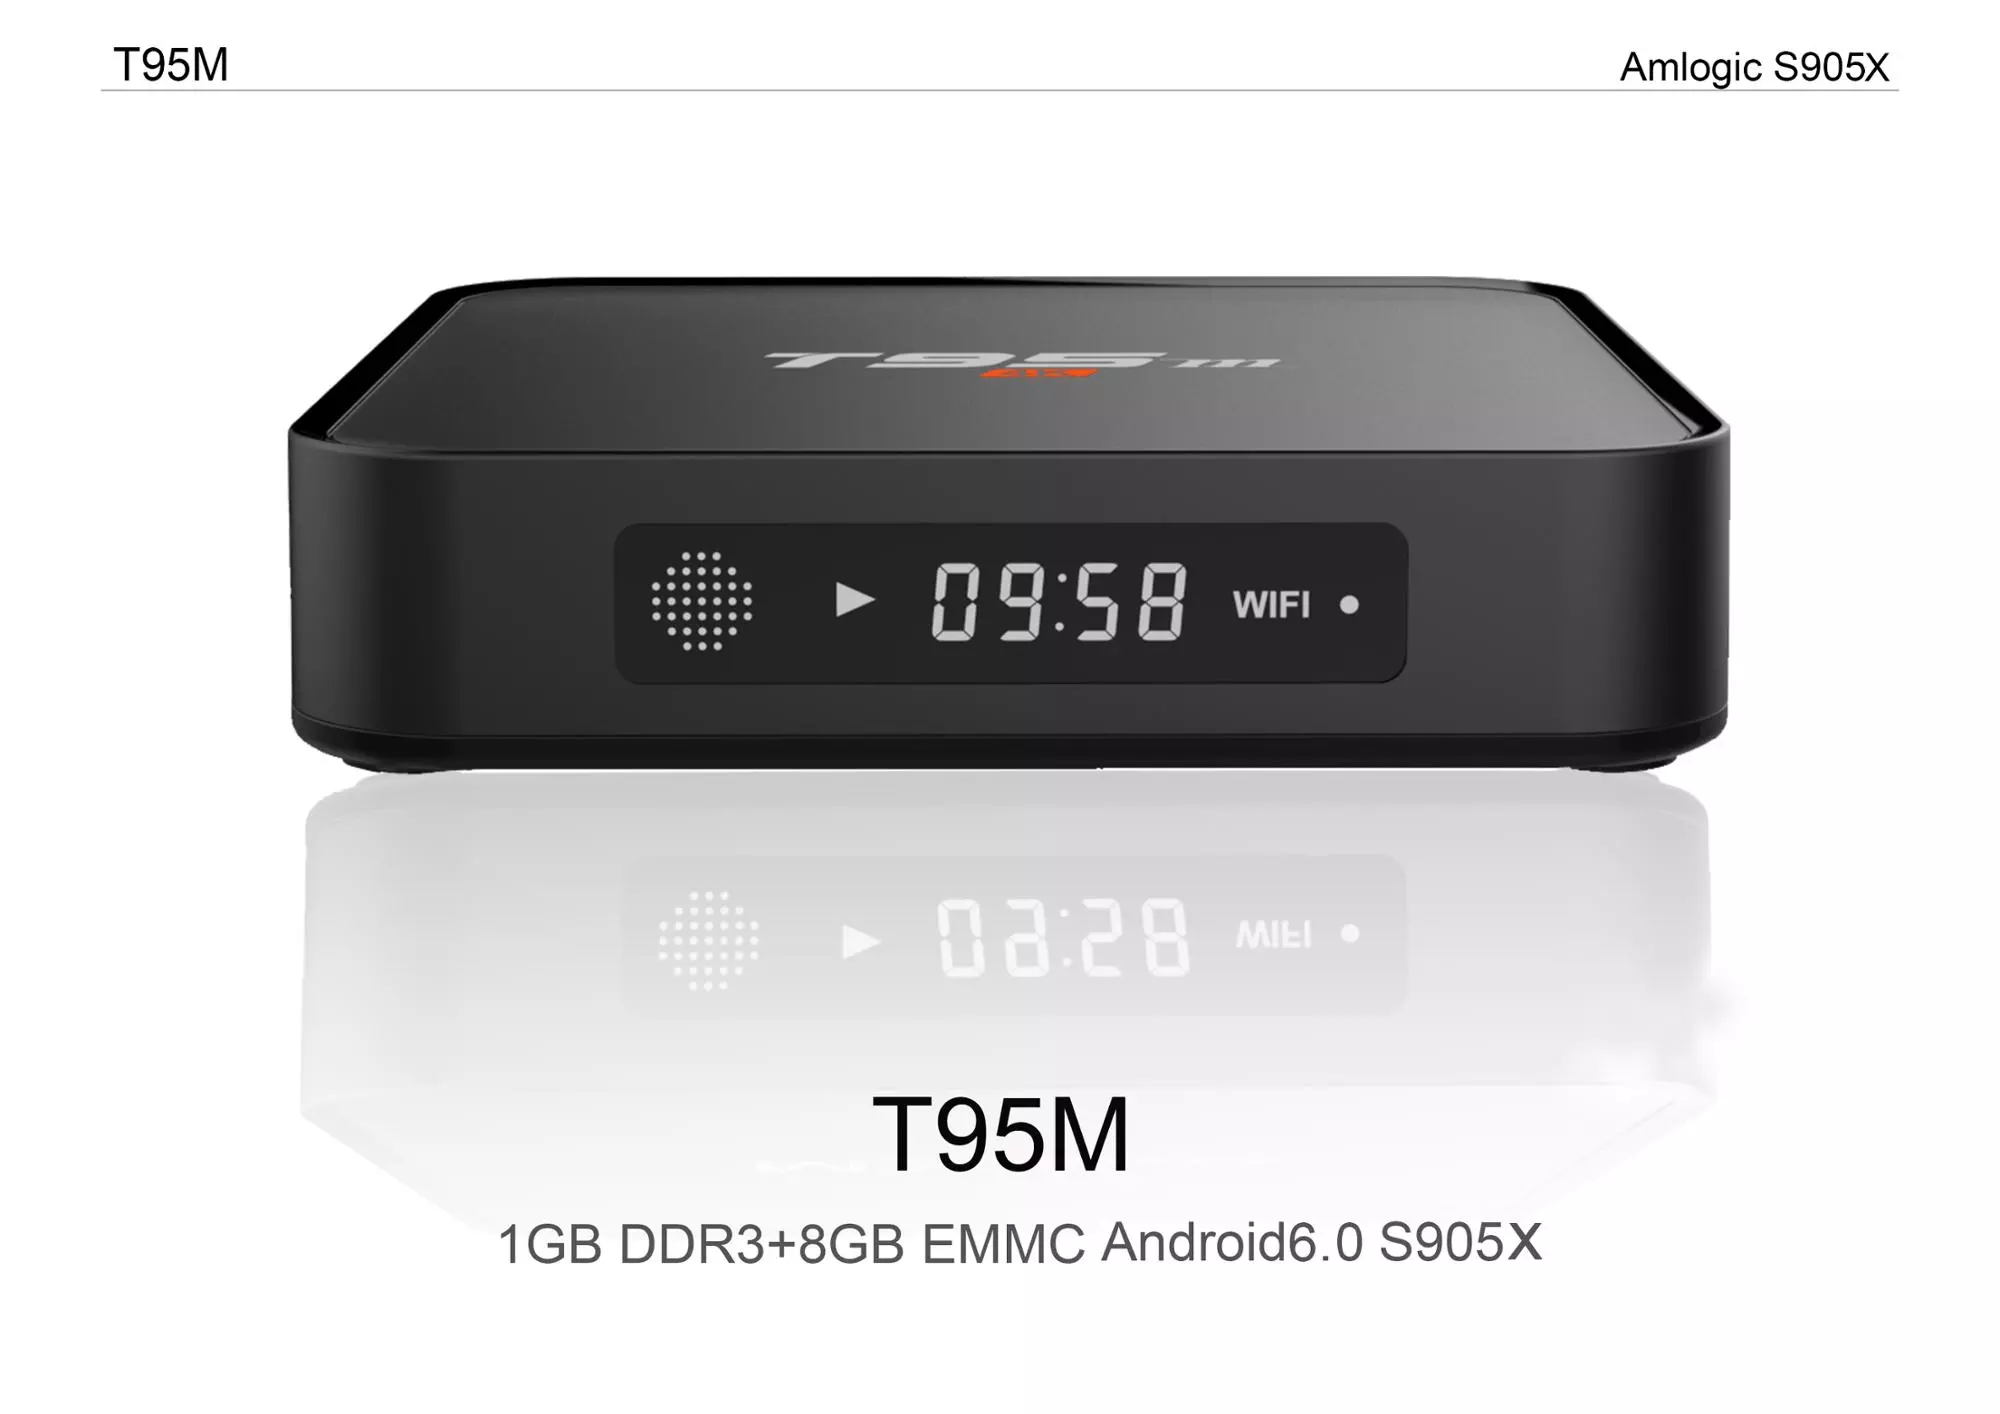 High quality T95m amlogic s905x smart android 6.0 tv box smart android tv box